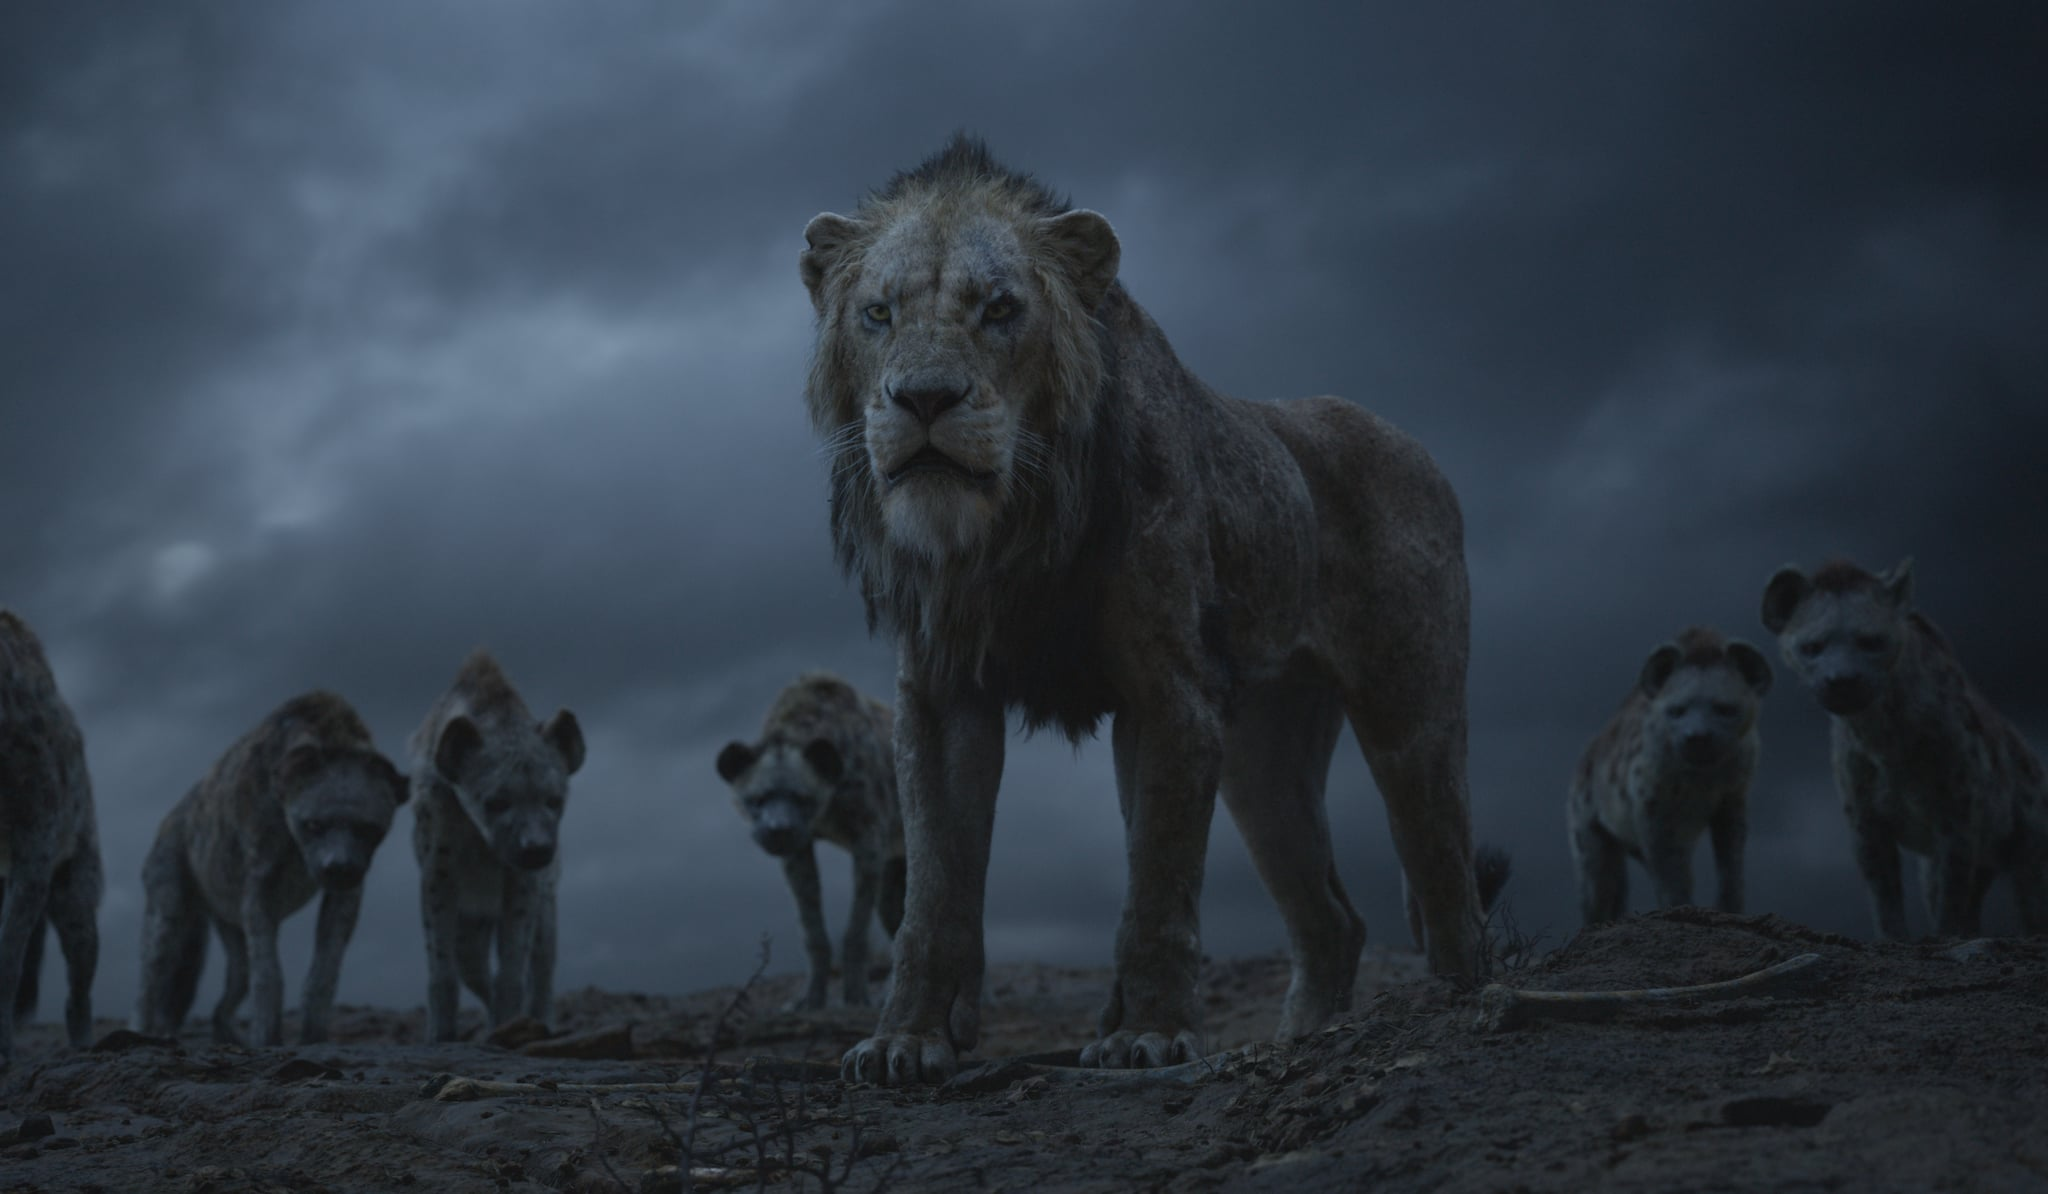 THE LION KING - Featuring the voices of Florence Kasumba, Eric André and Keegan-Michael Key as the hyenas, and Chiwetal Ejiofor as Scar, Disney's